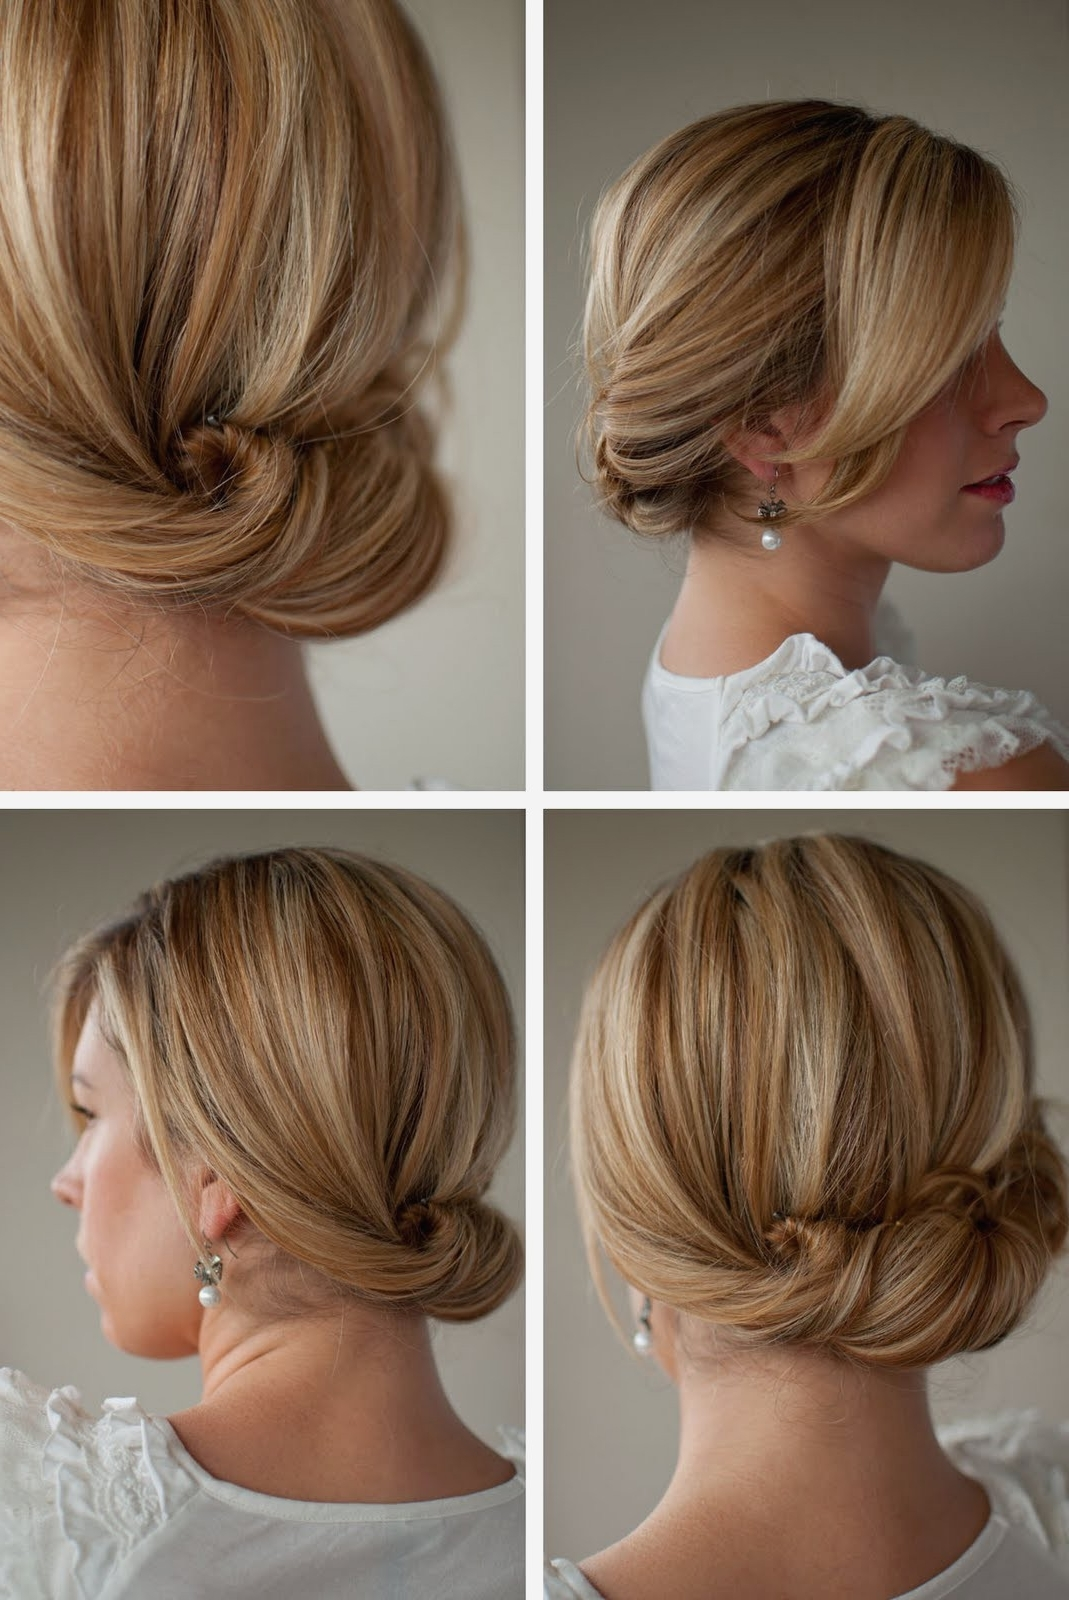 Latest Easy Wedding Guest Hairstyles For Short Hair Intended For Wedding Hairstyles : View Hairstyles For Short Hair Wedding Guest (View 9 of 15)